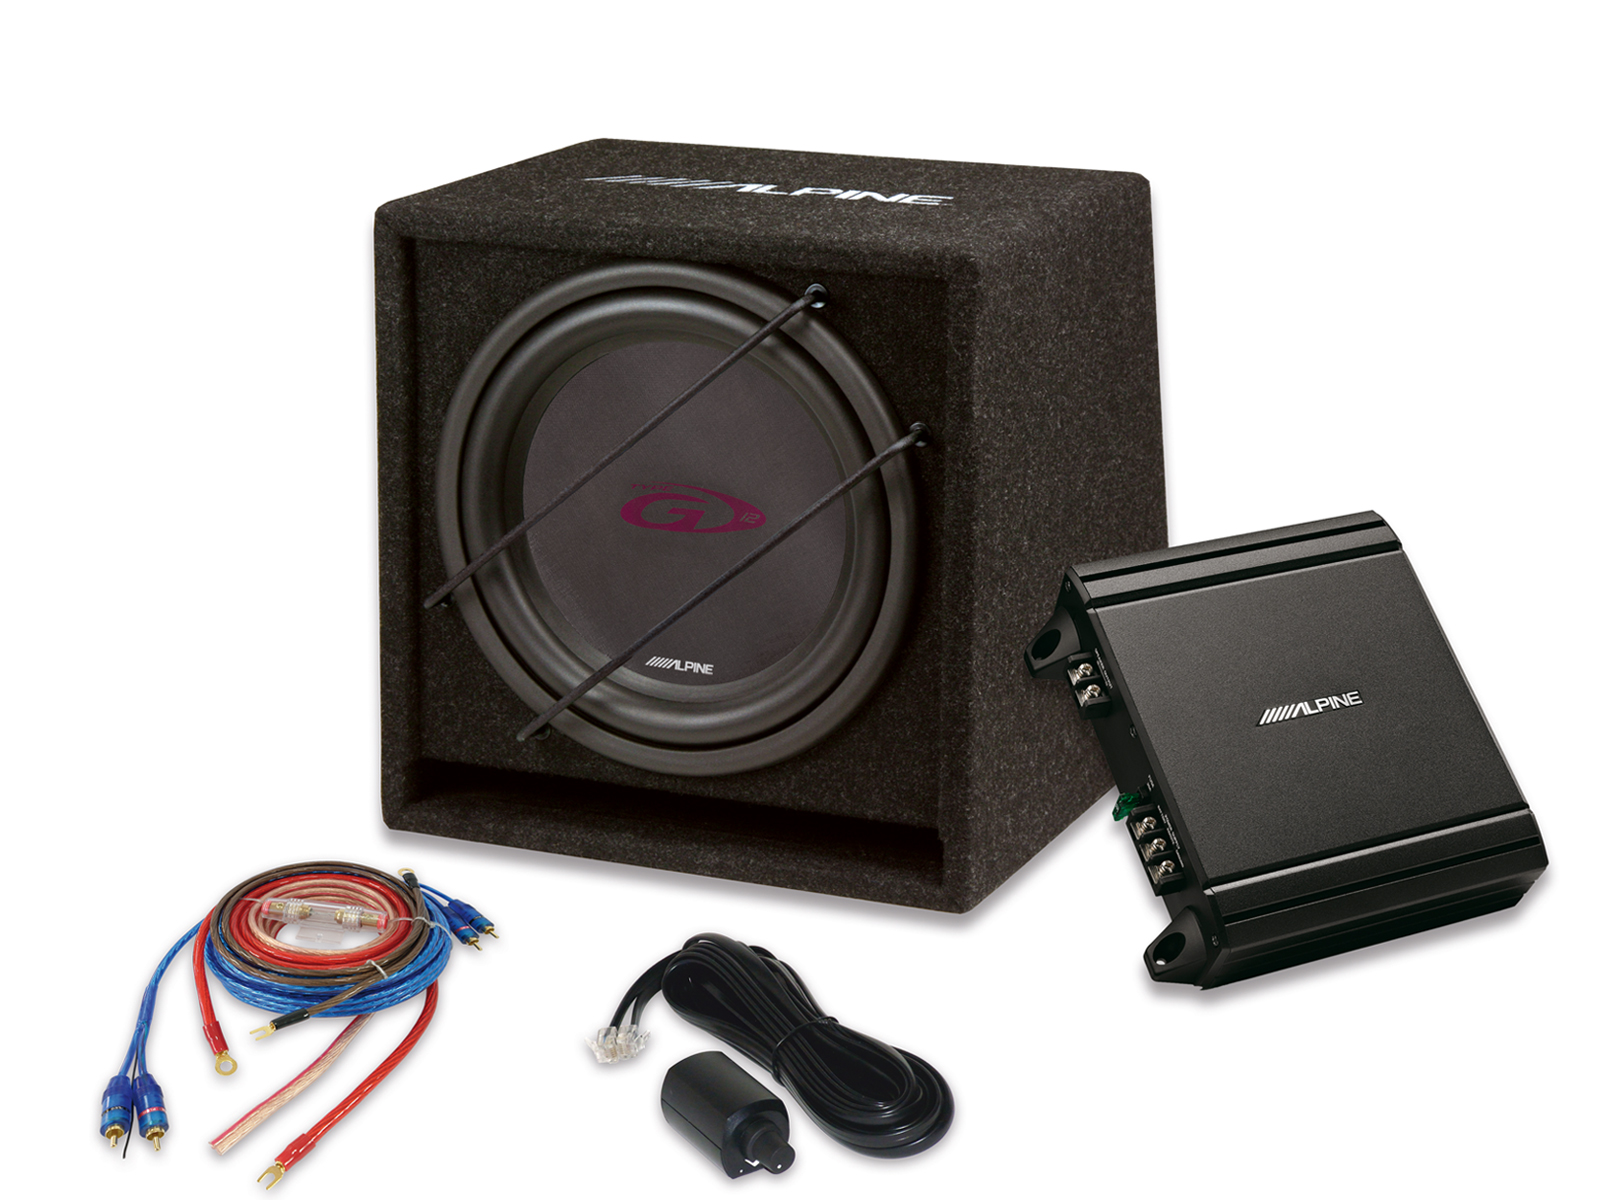 Alpine SBG-30KIT 30 cm (12-Zoll) Power Subwoofer Paket Verstärker + Subwoofer + Kabel